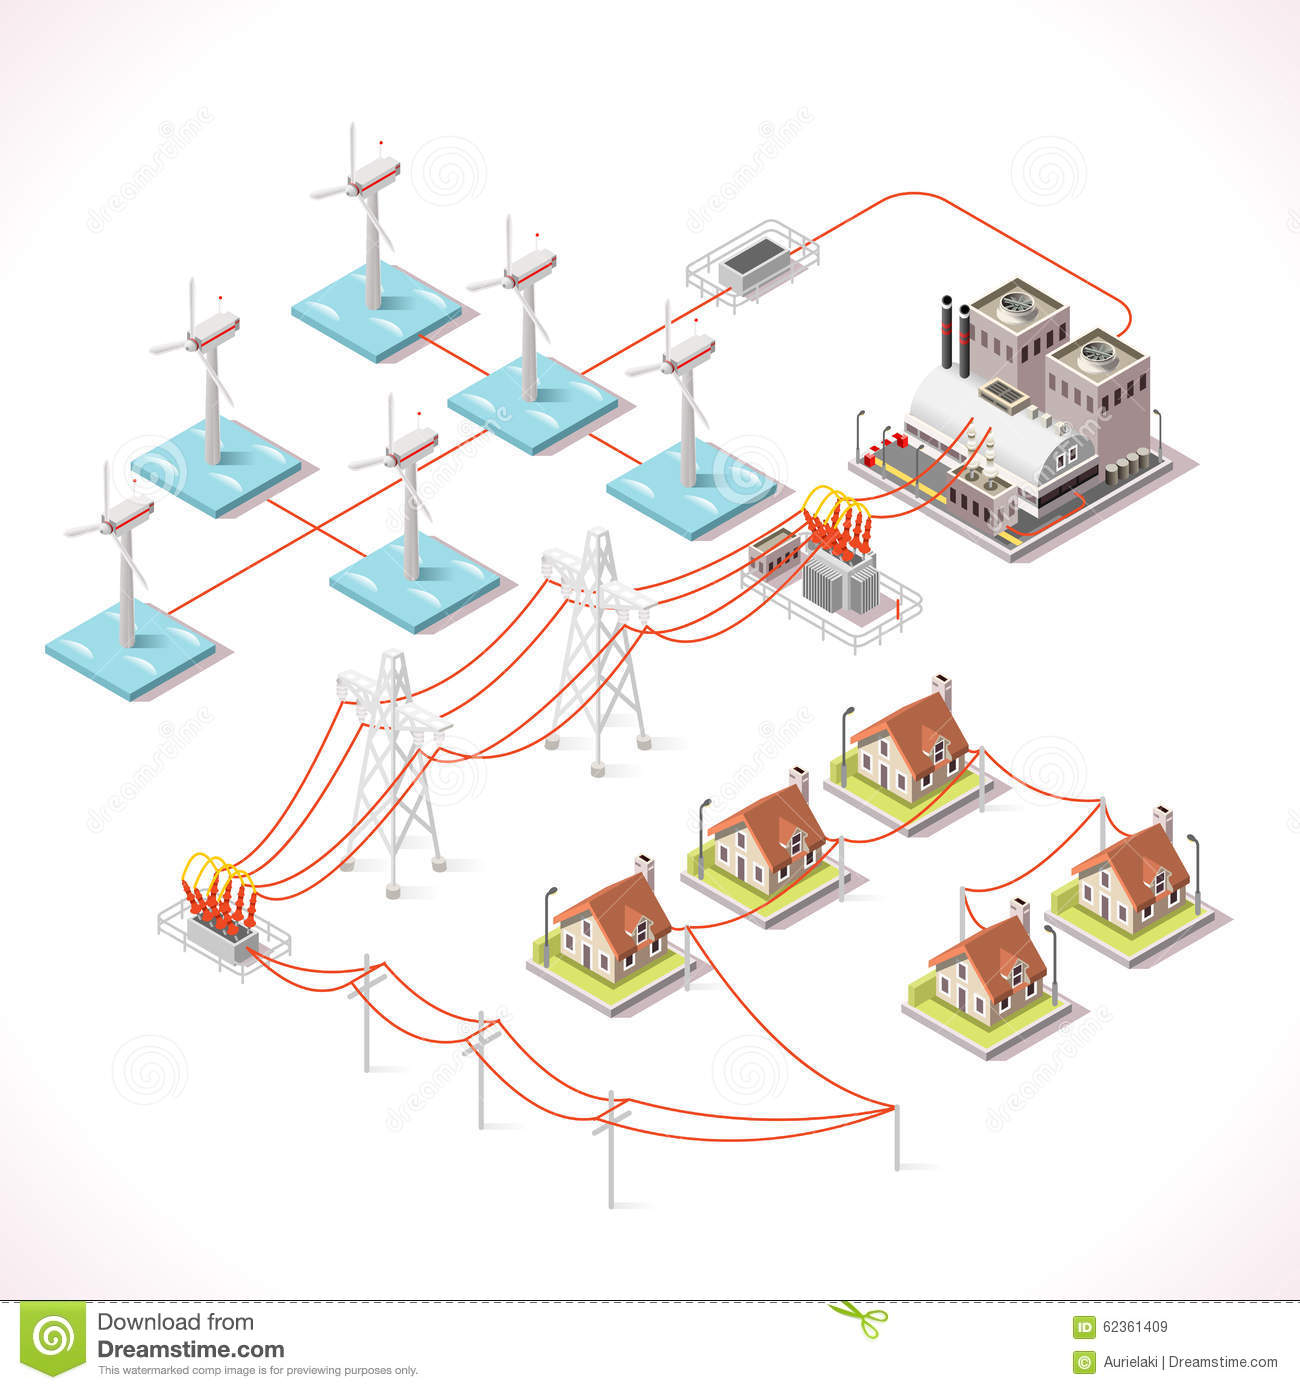 14627d10 4571 429e 9ab4 Cbc3f4414d00 also 089093 3d Transparent Glass Icon Signs Fan as well Allnews moreover Stock Illustration Energy Infographic Isometric Offshore Wind Farms Windmill Power Plant Factory Electric Power Station Electricity Grid Supply Image62361409 as well Stock Photos Ready To Ship Cardboard Box Mailing Package Order Stock Words Illustrate Product Goods Prepared Be Sent Image35971703. on electric generator map